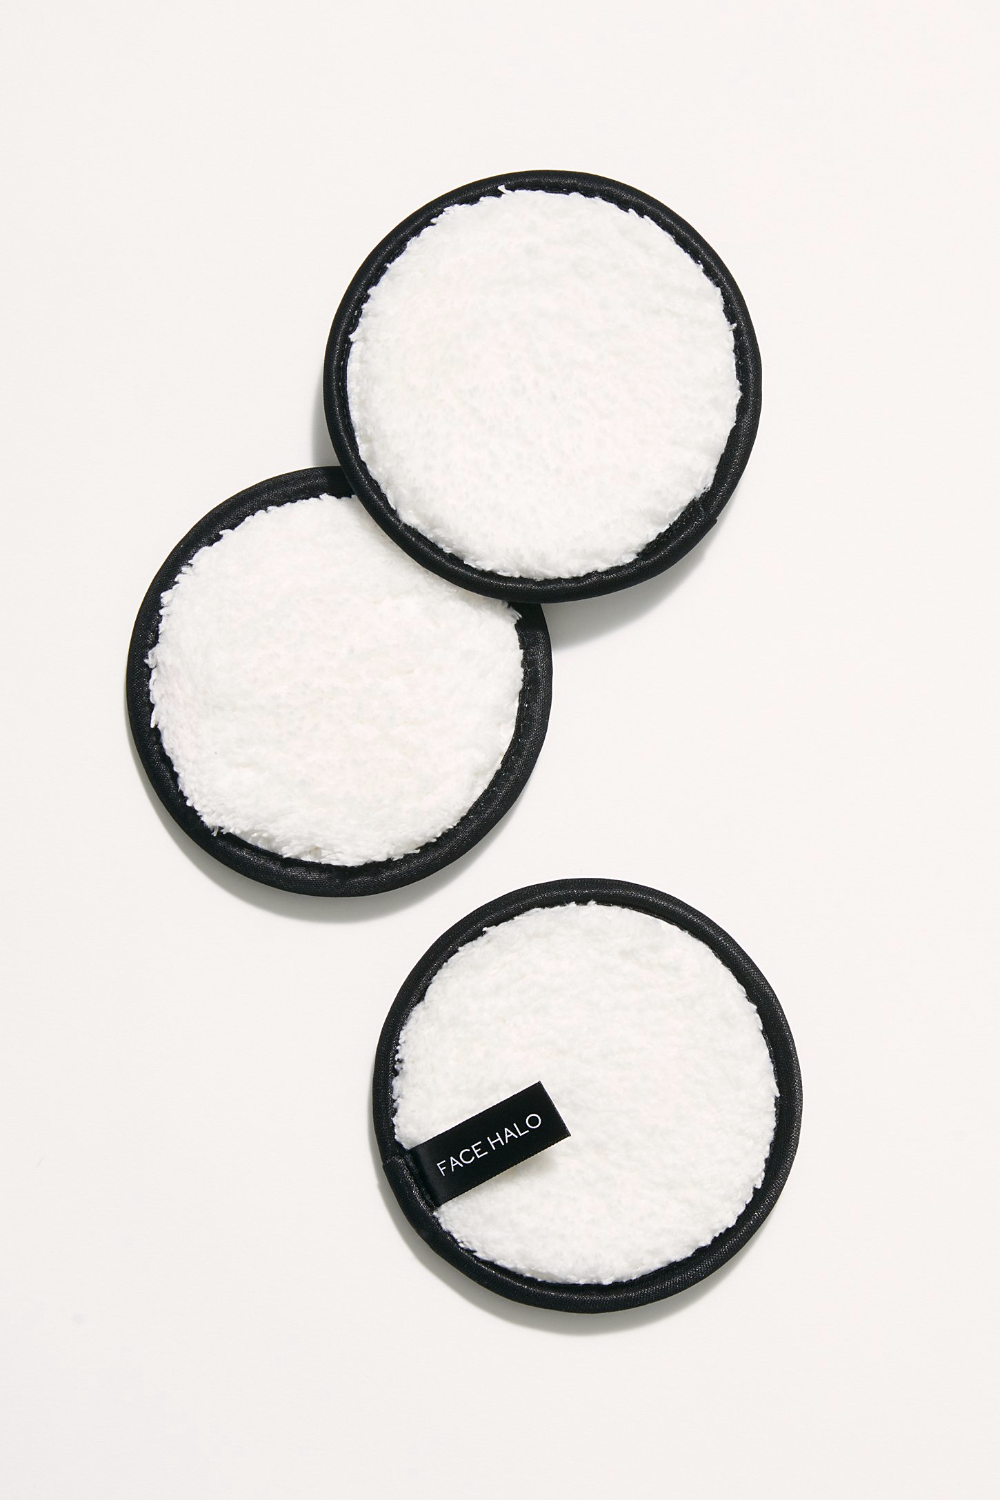 Face Halo Makeup Remover Pads Makeup remover pads